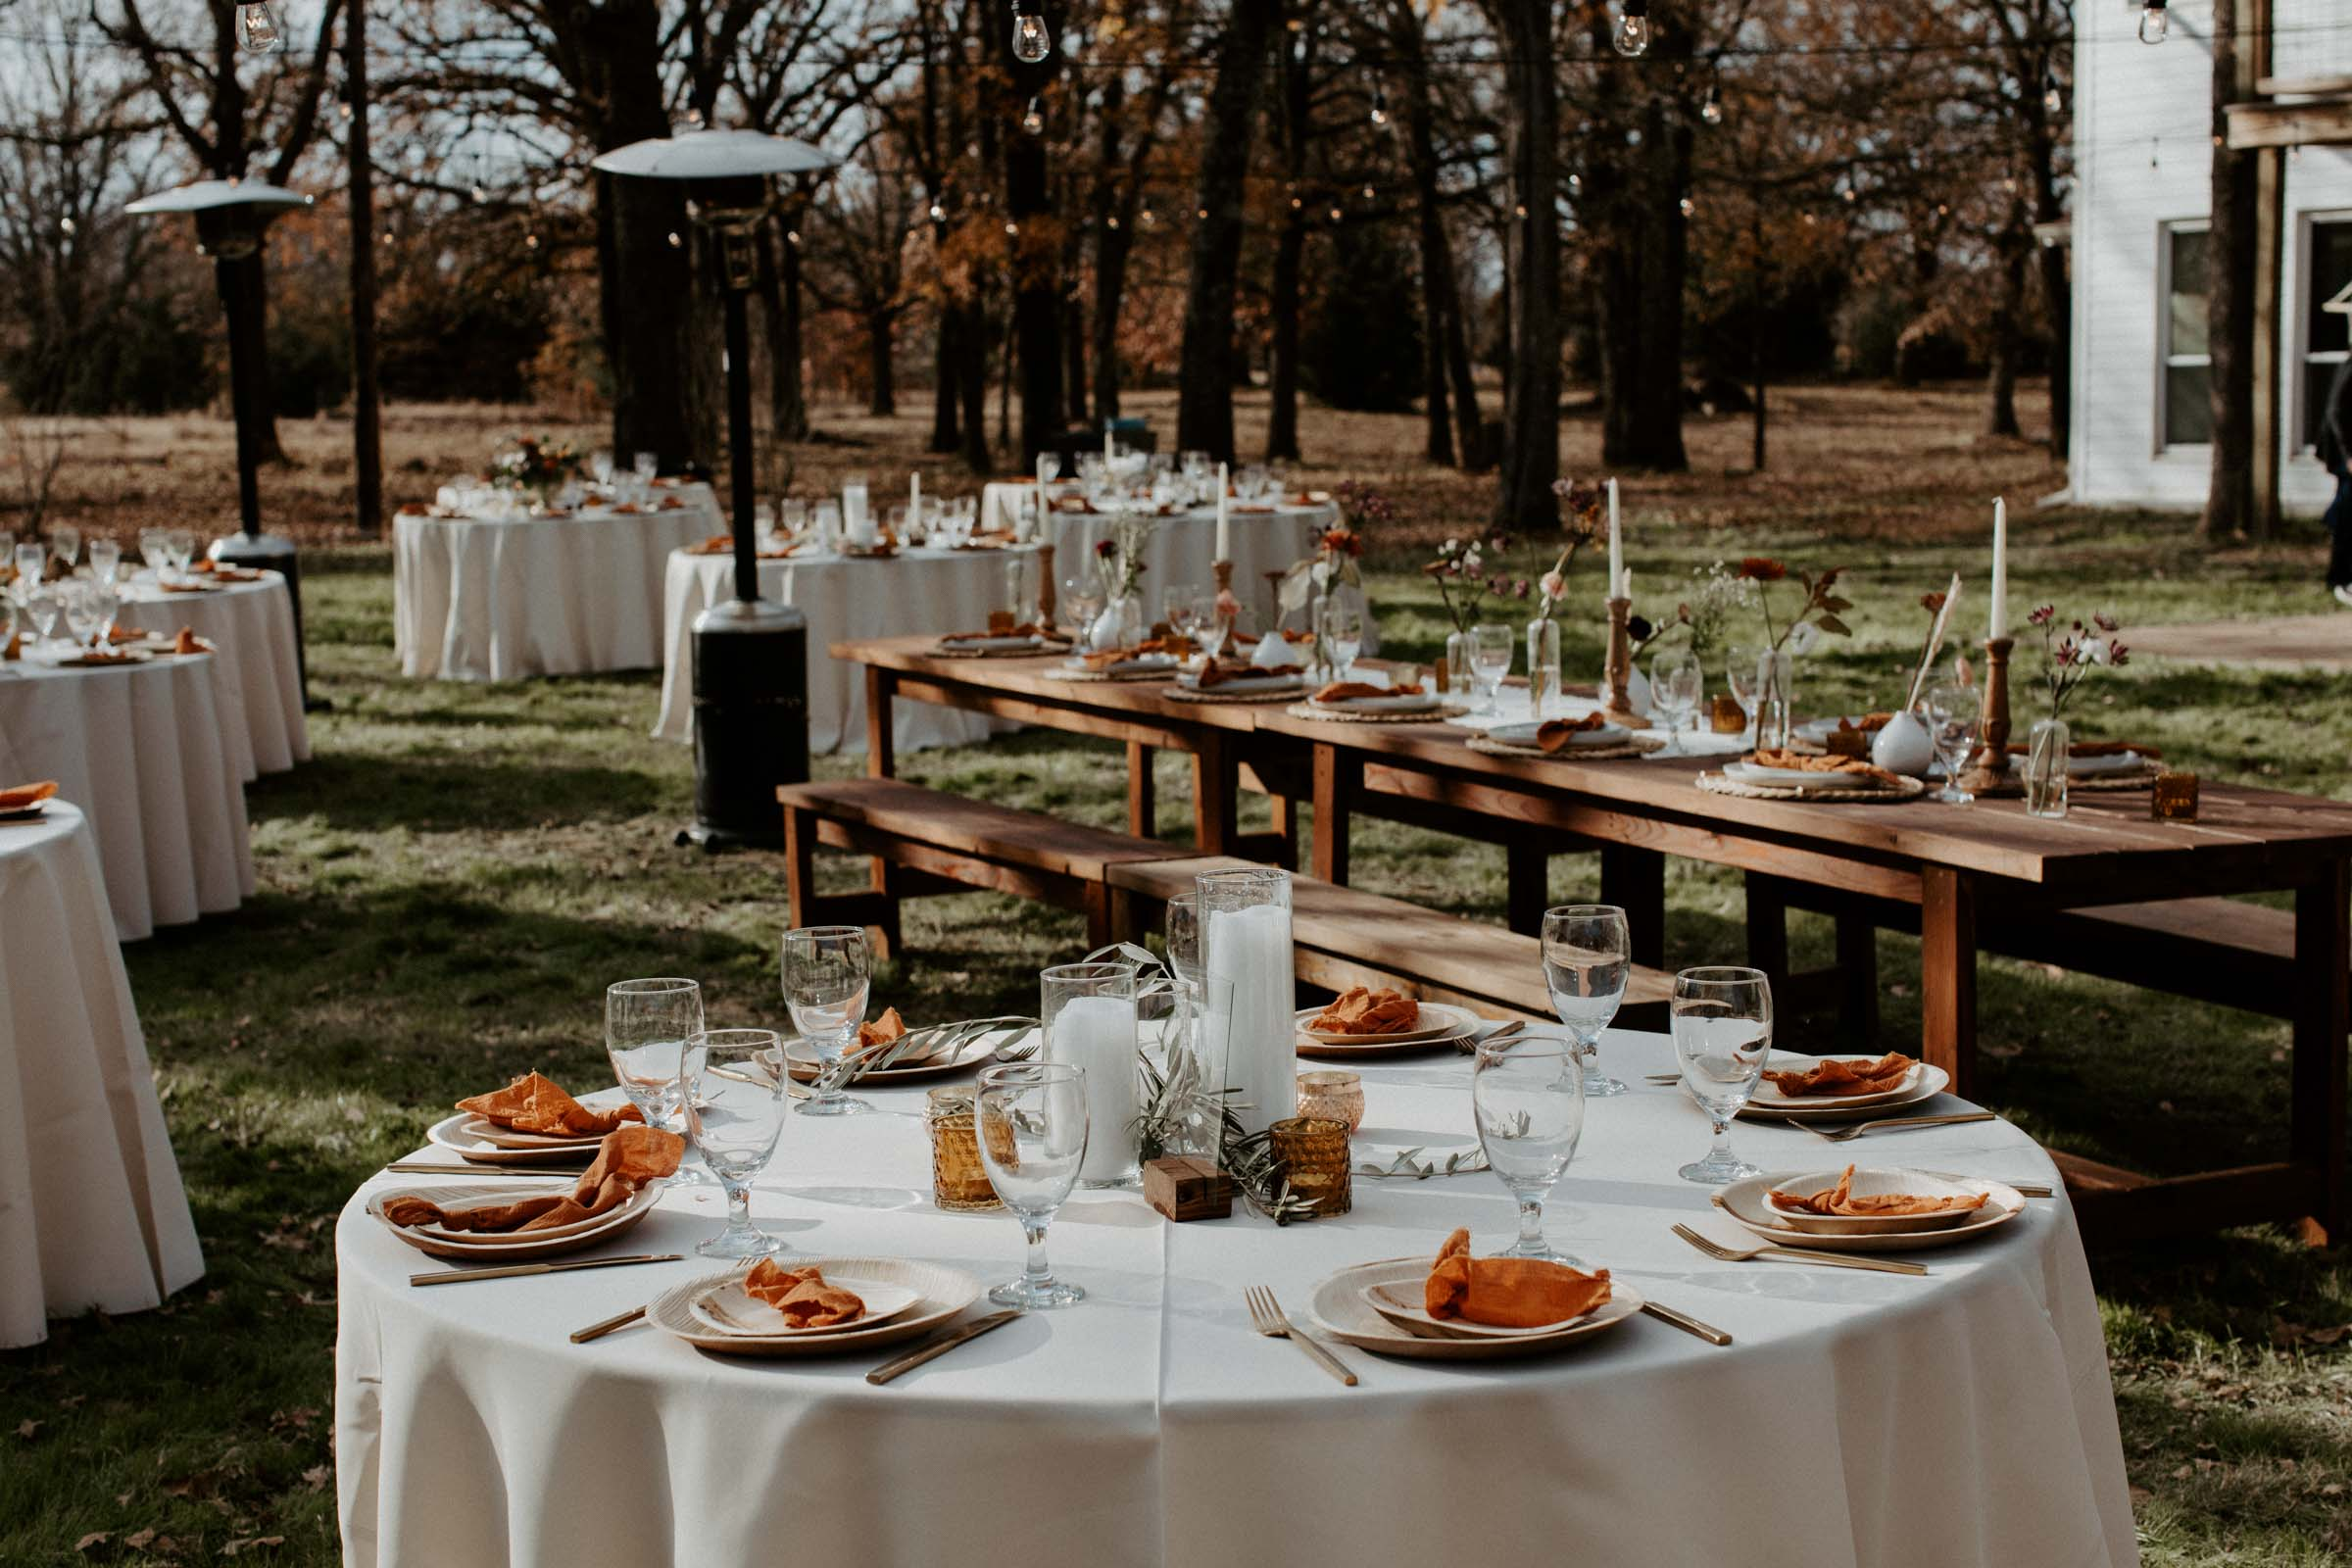 Beautiful outdoor boho table arrangements for wedding day in Fort Worth